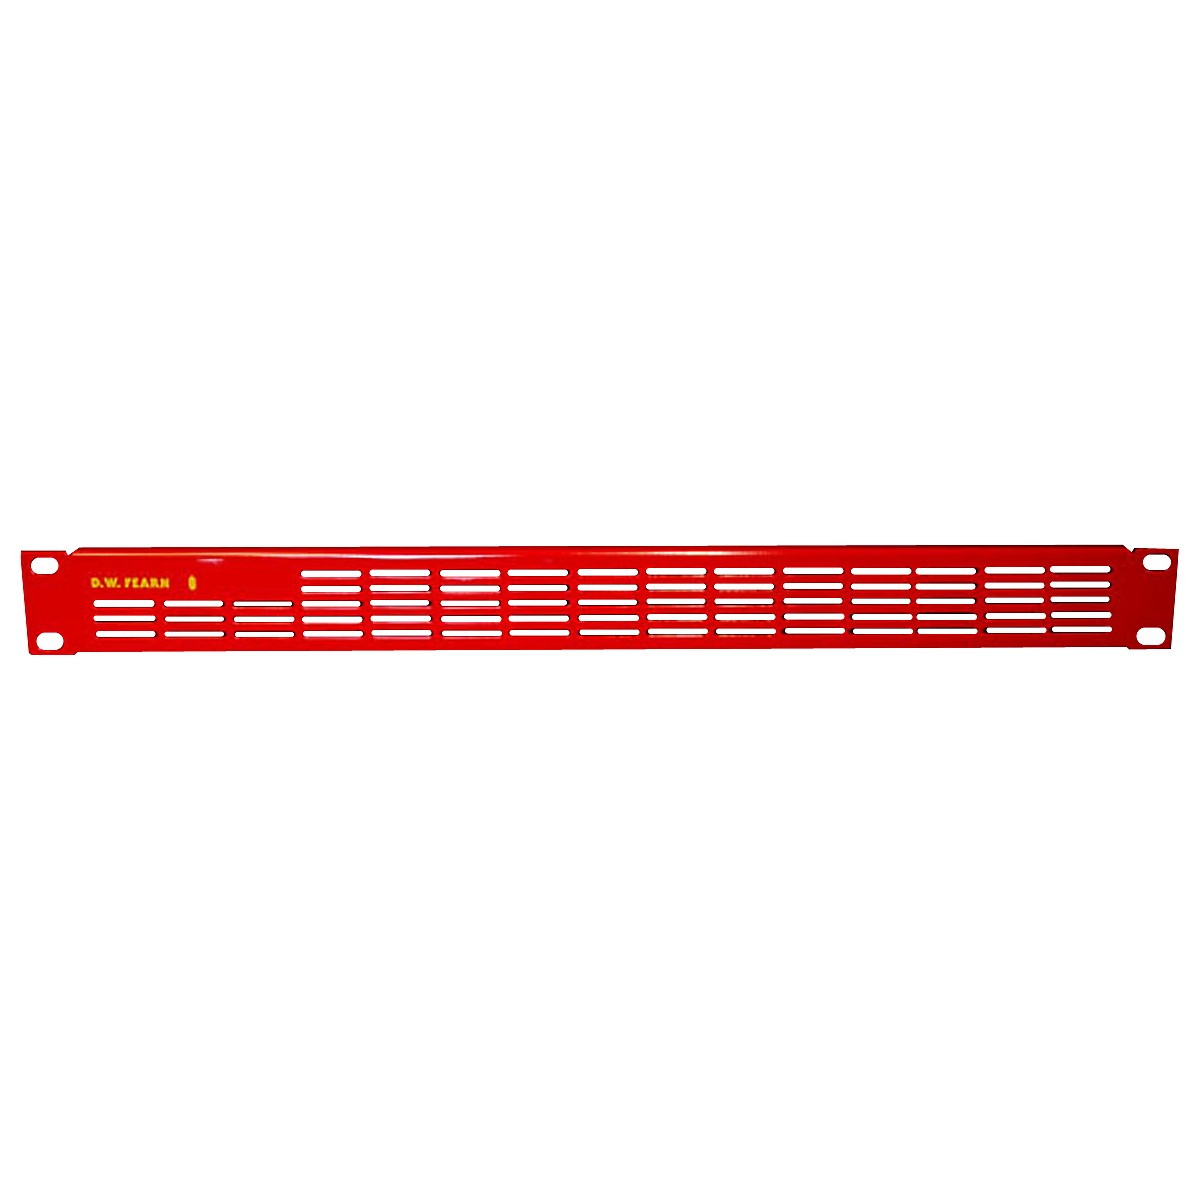 D.W. Fearn VRP-1 Red Vented Rack Panel